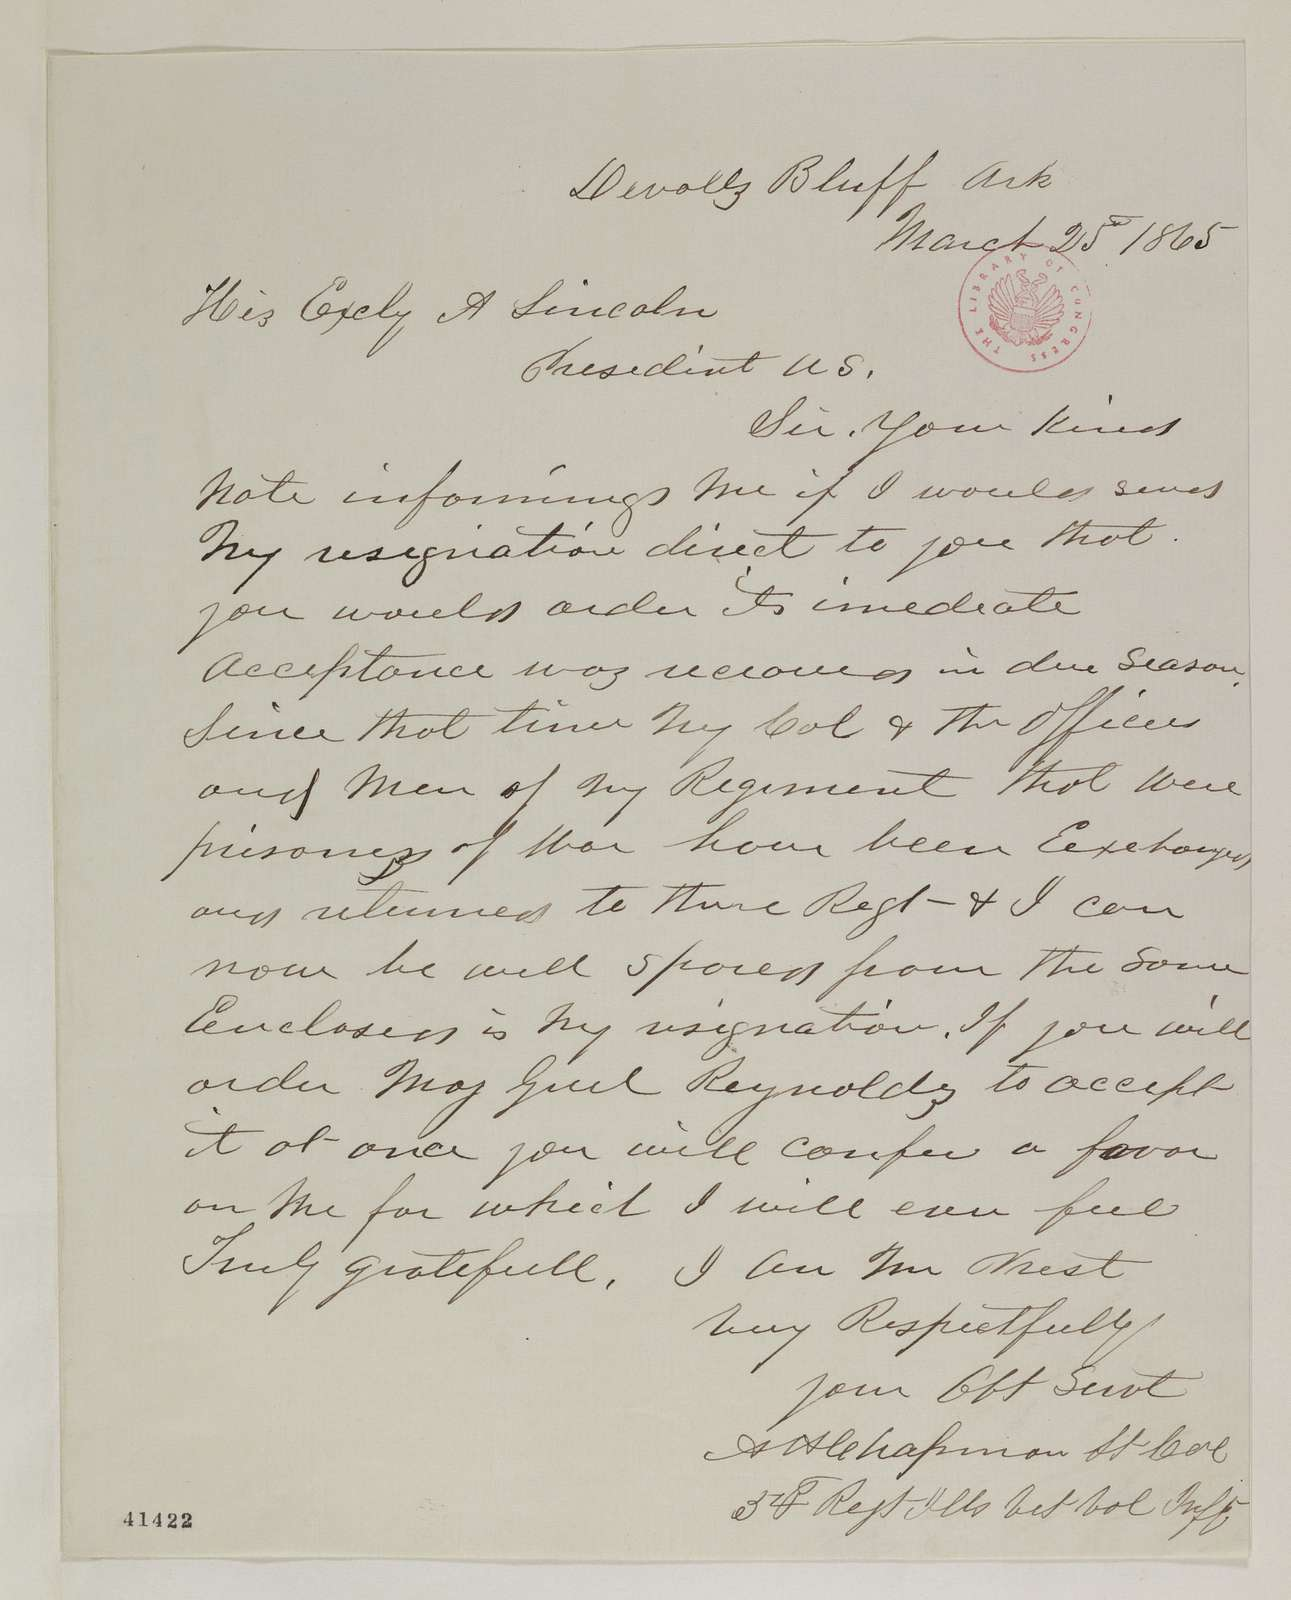 Abraham Lincoln papers: Series 1. General Correspondence. 1833-1916: Augustus H. Chapman to Abraham Lincoln, Saturday, March 25, 1865 (Resignation; endorsed by John Hay)